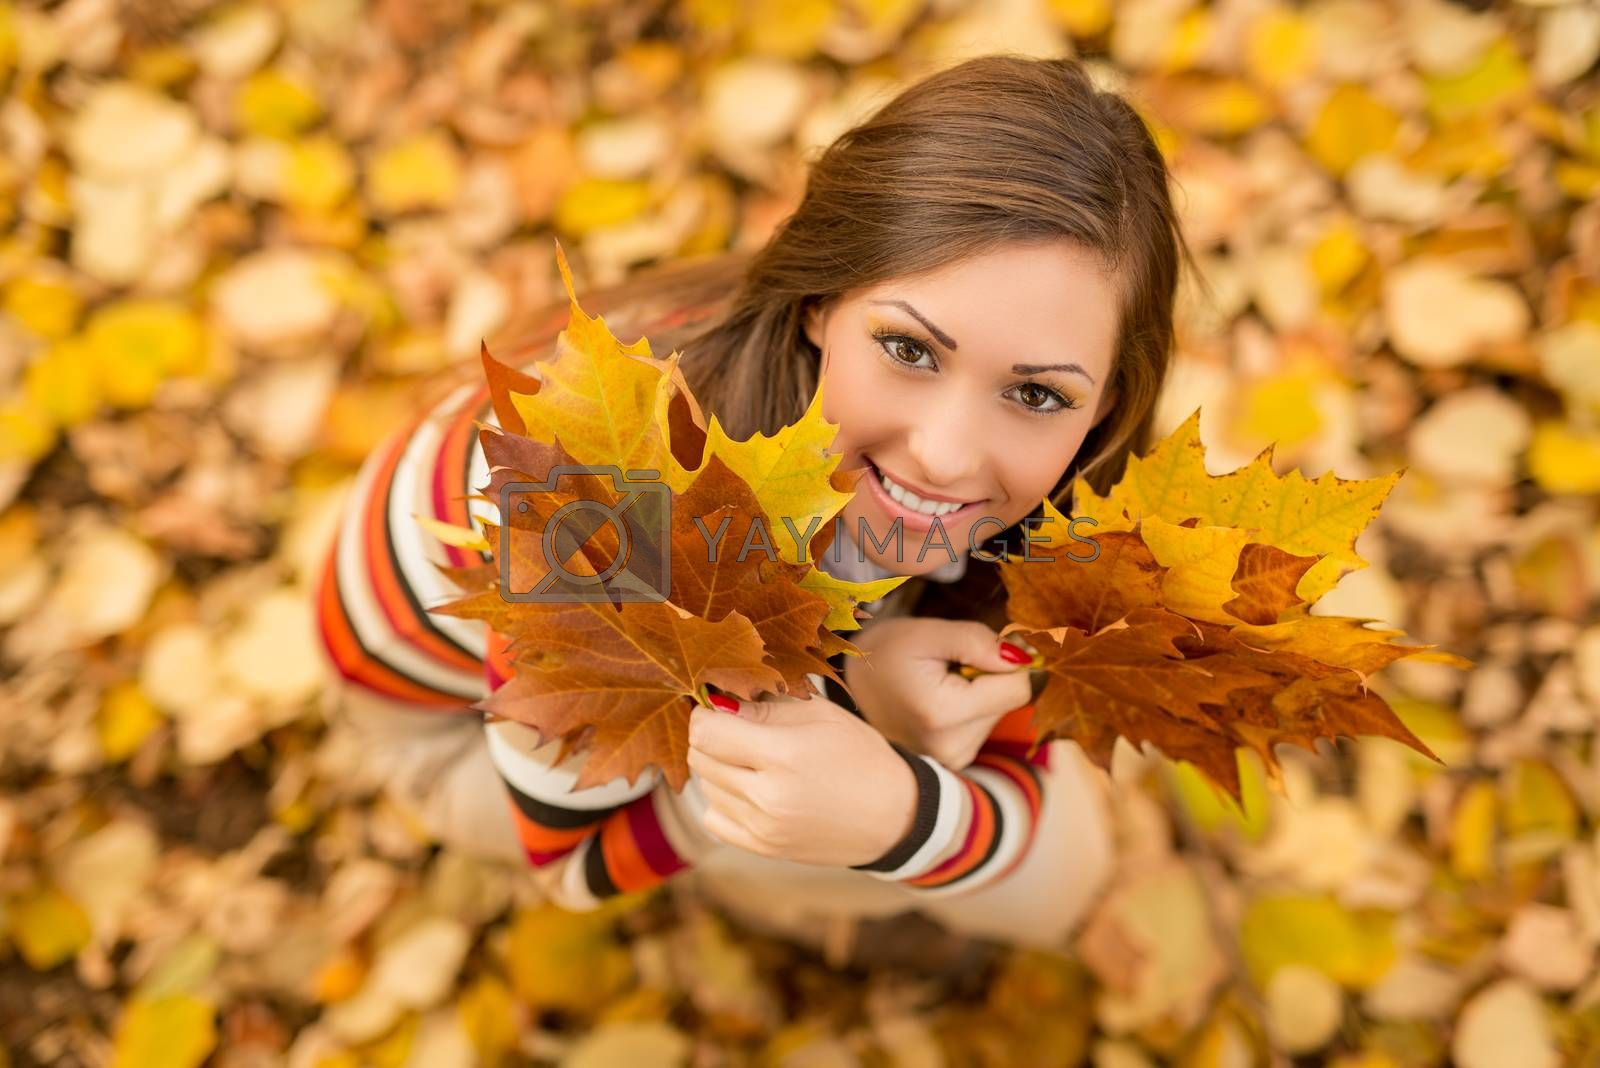 Beautiful young woman enjoying in sunny forest in autumn colors. She is holding golden yellow leaves. Looking at camera.